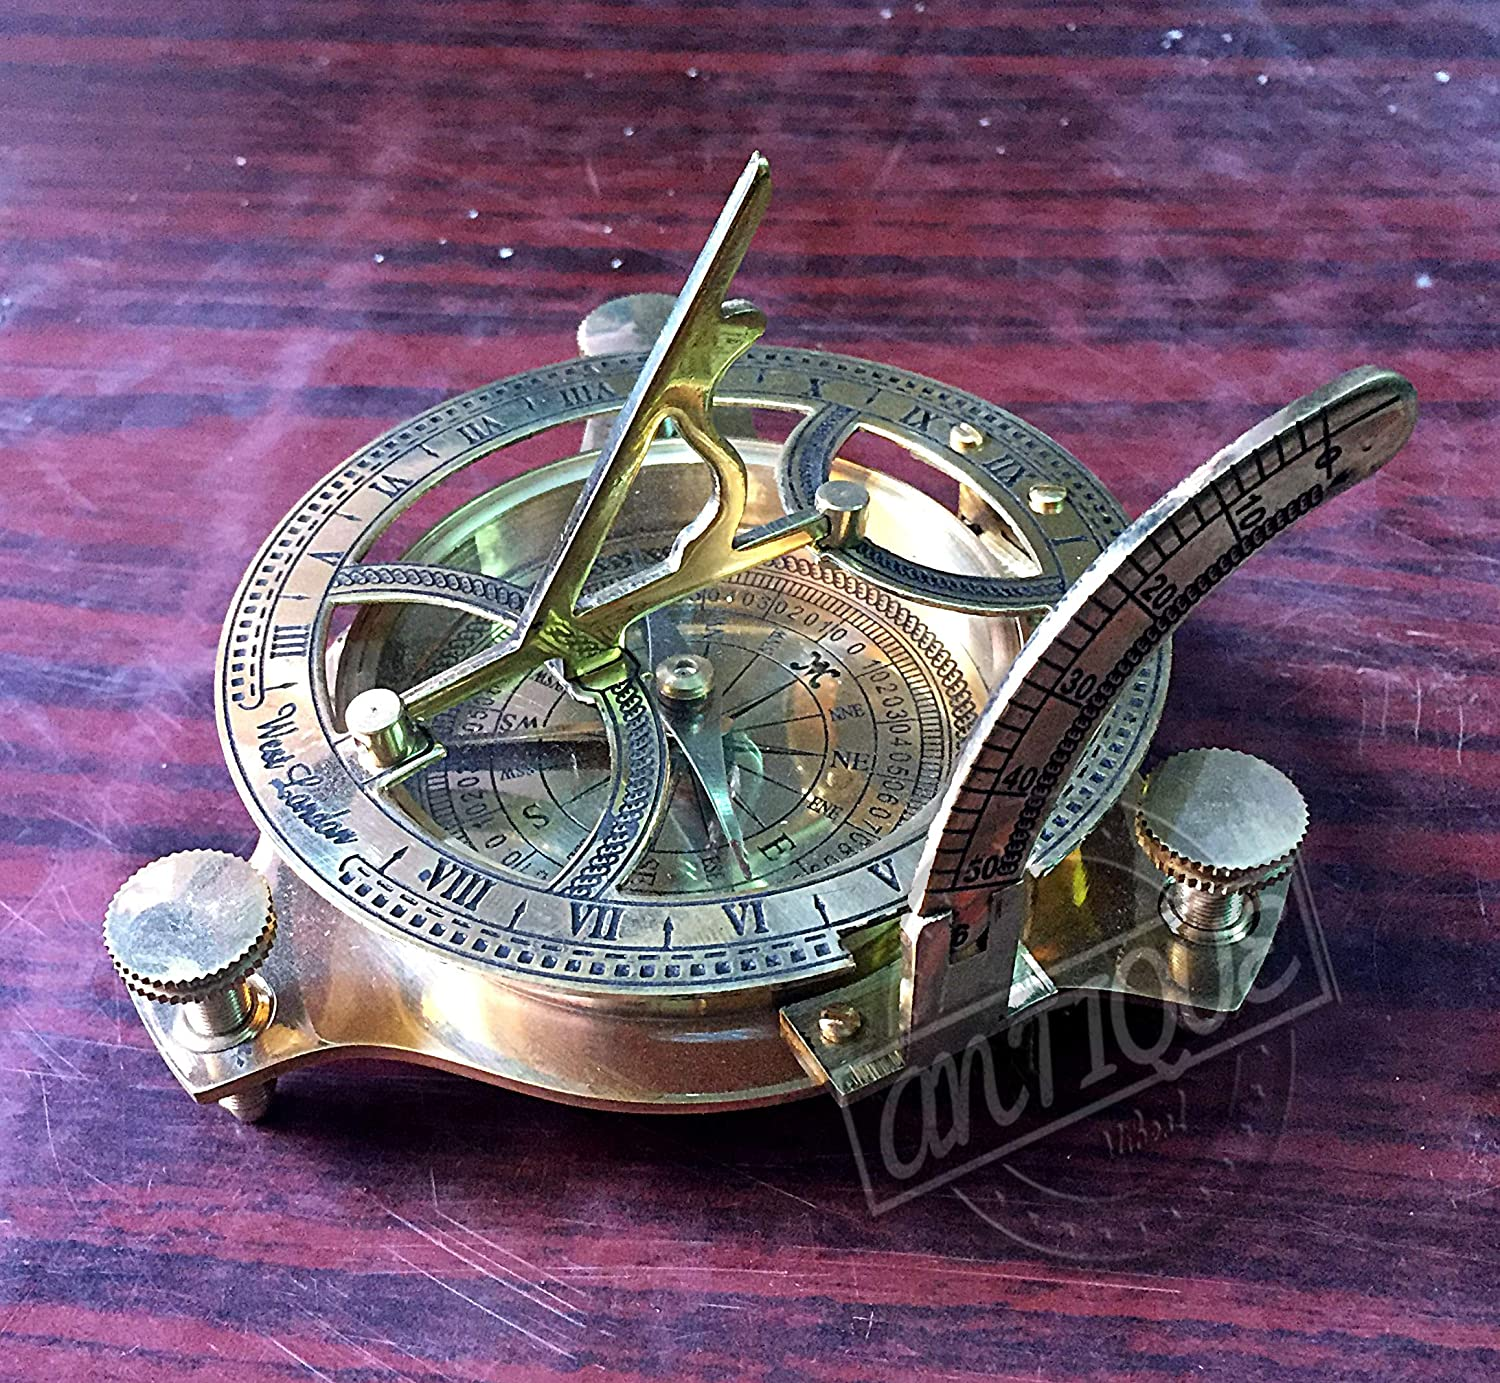 AV Nautical Sundial Selling Max 80% OFF and selling with Compass Gift Style Vintage Clock Unique